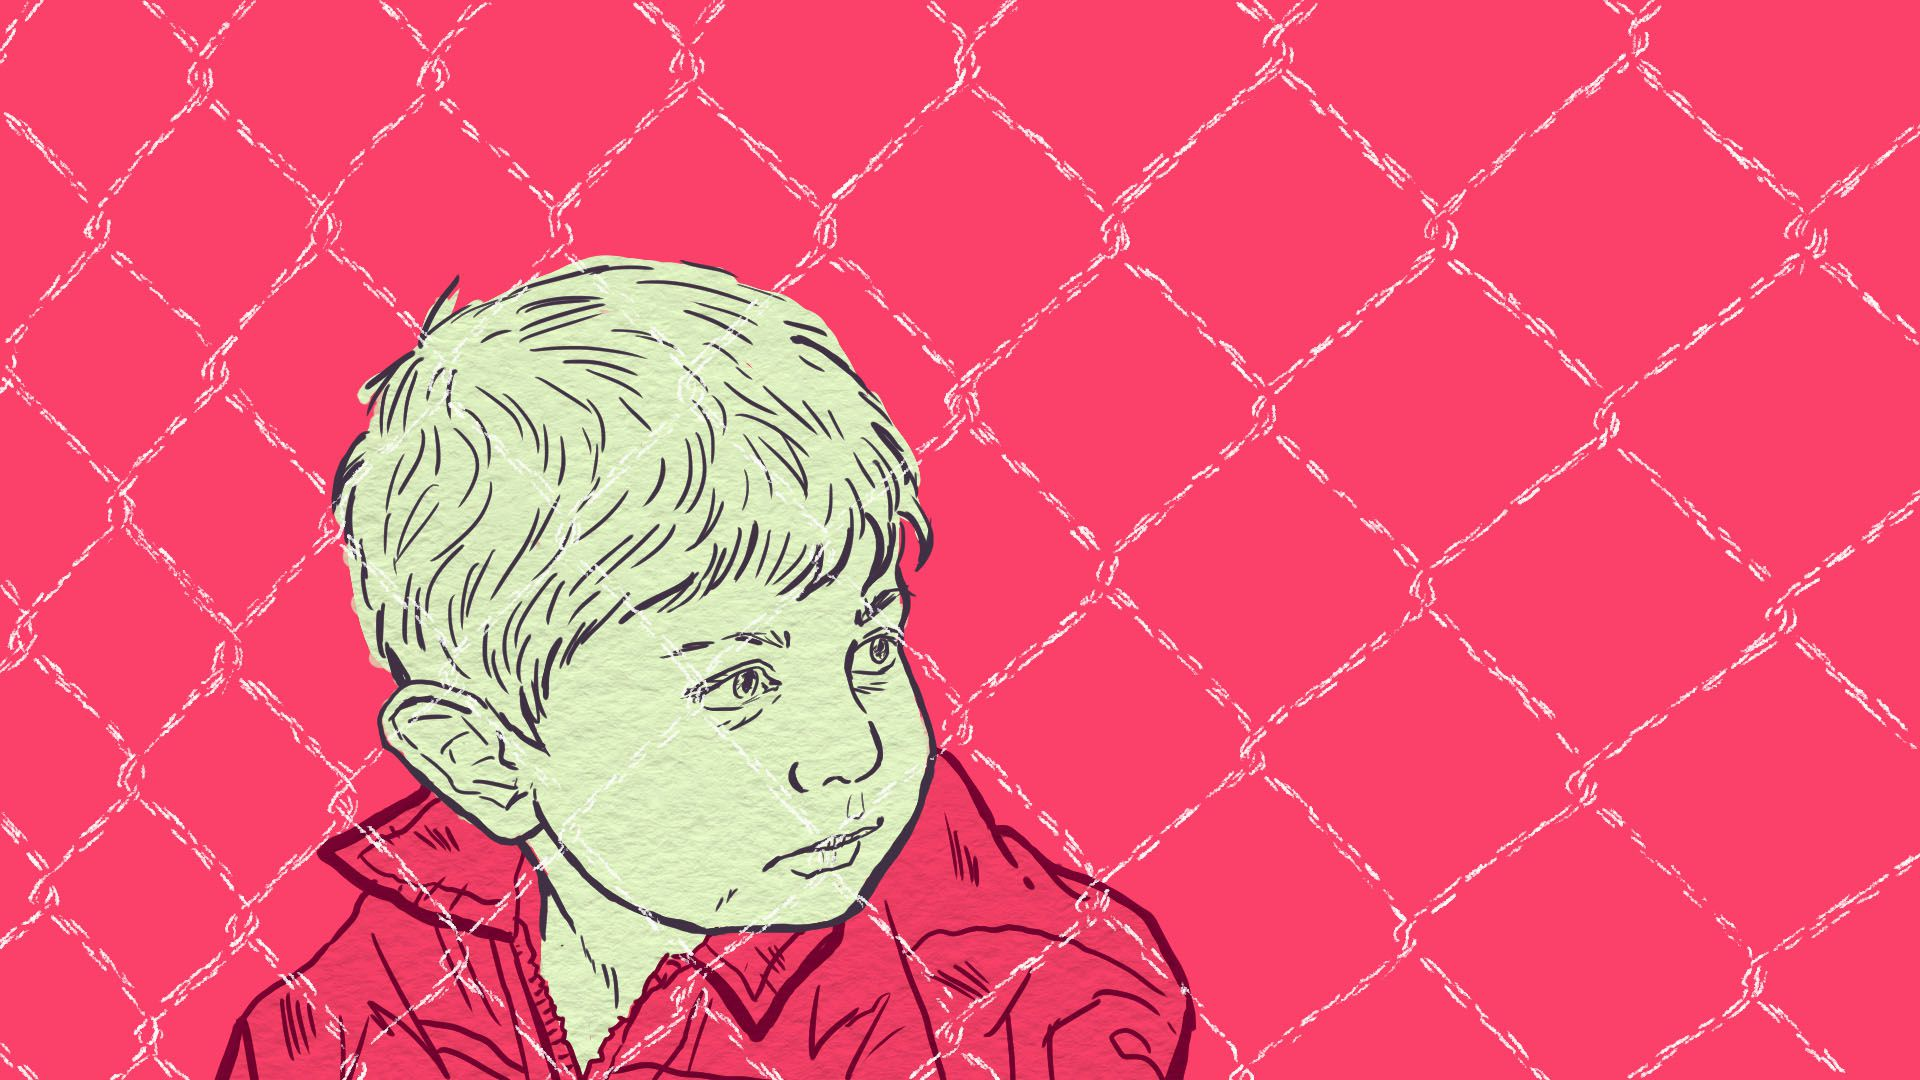 An illustration of a child with a wire fencing in the foreground. It is on a hot pink background.